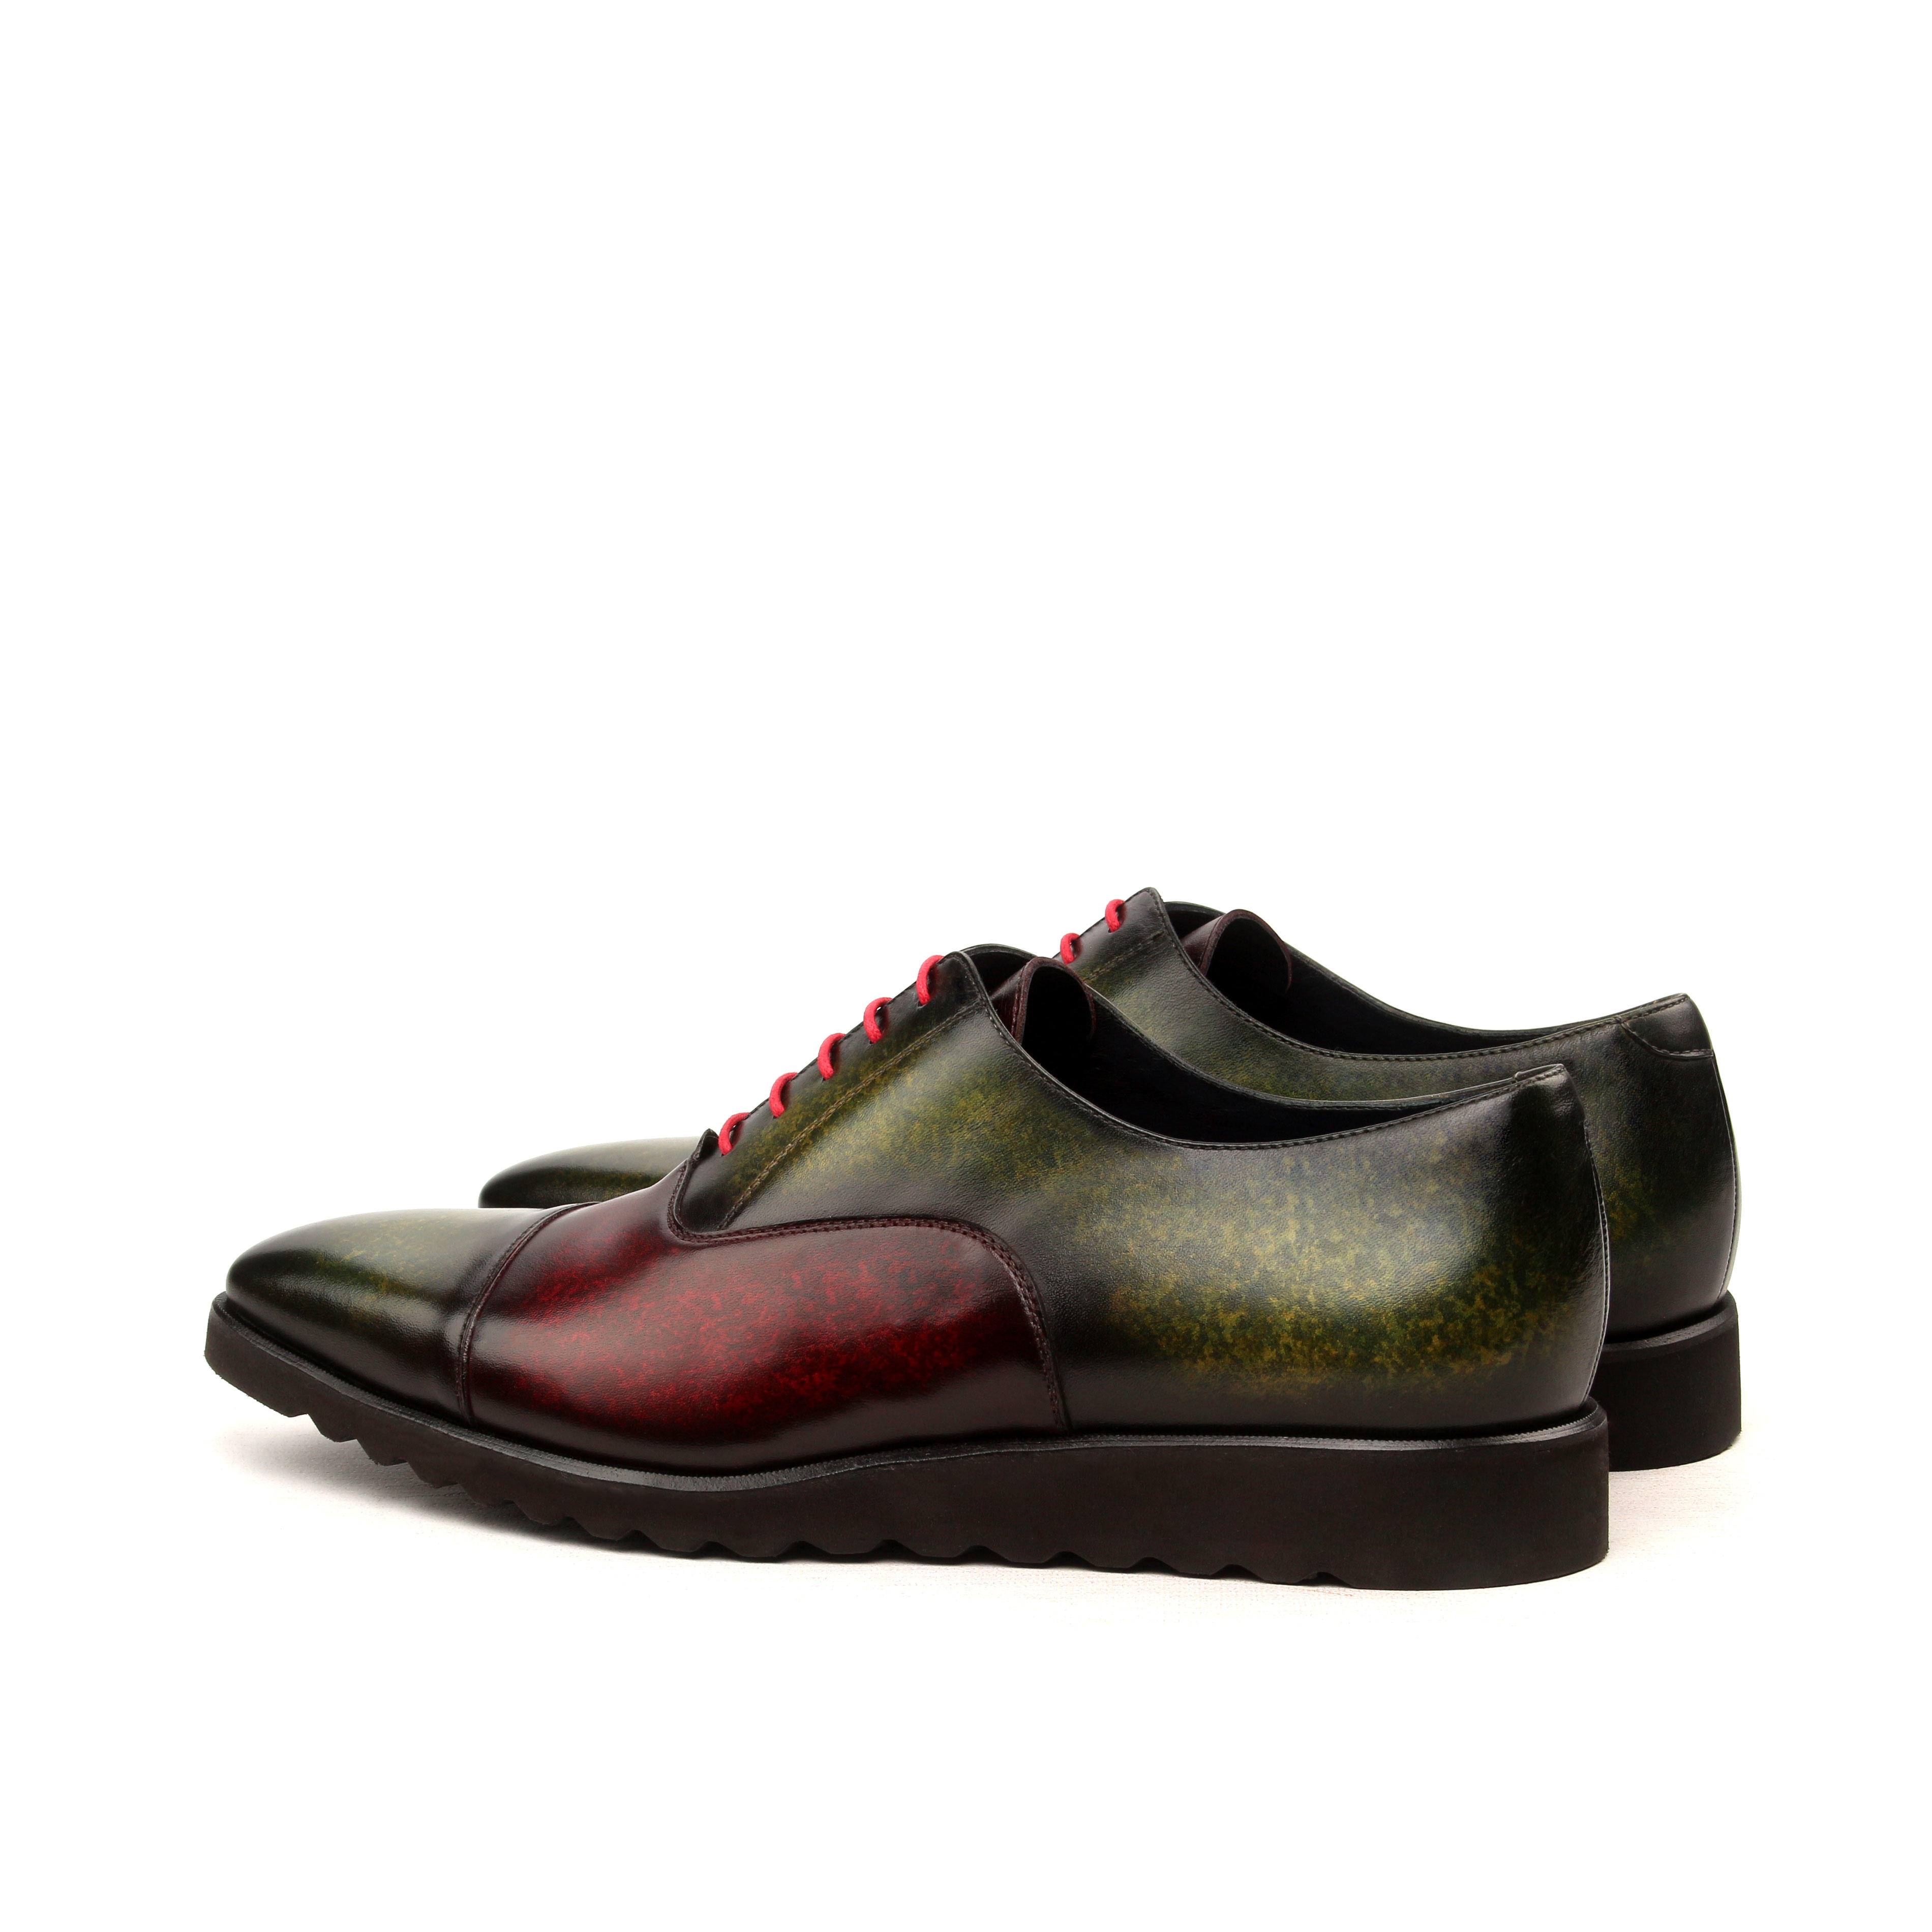 MANOR OF LONDON 'The Oxford' Burgundy & Khaki Patina Calfskin Shoe Luxury Custom Initials Monogrammed Back Side View